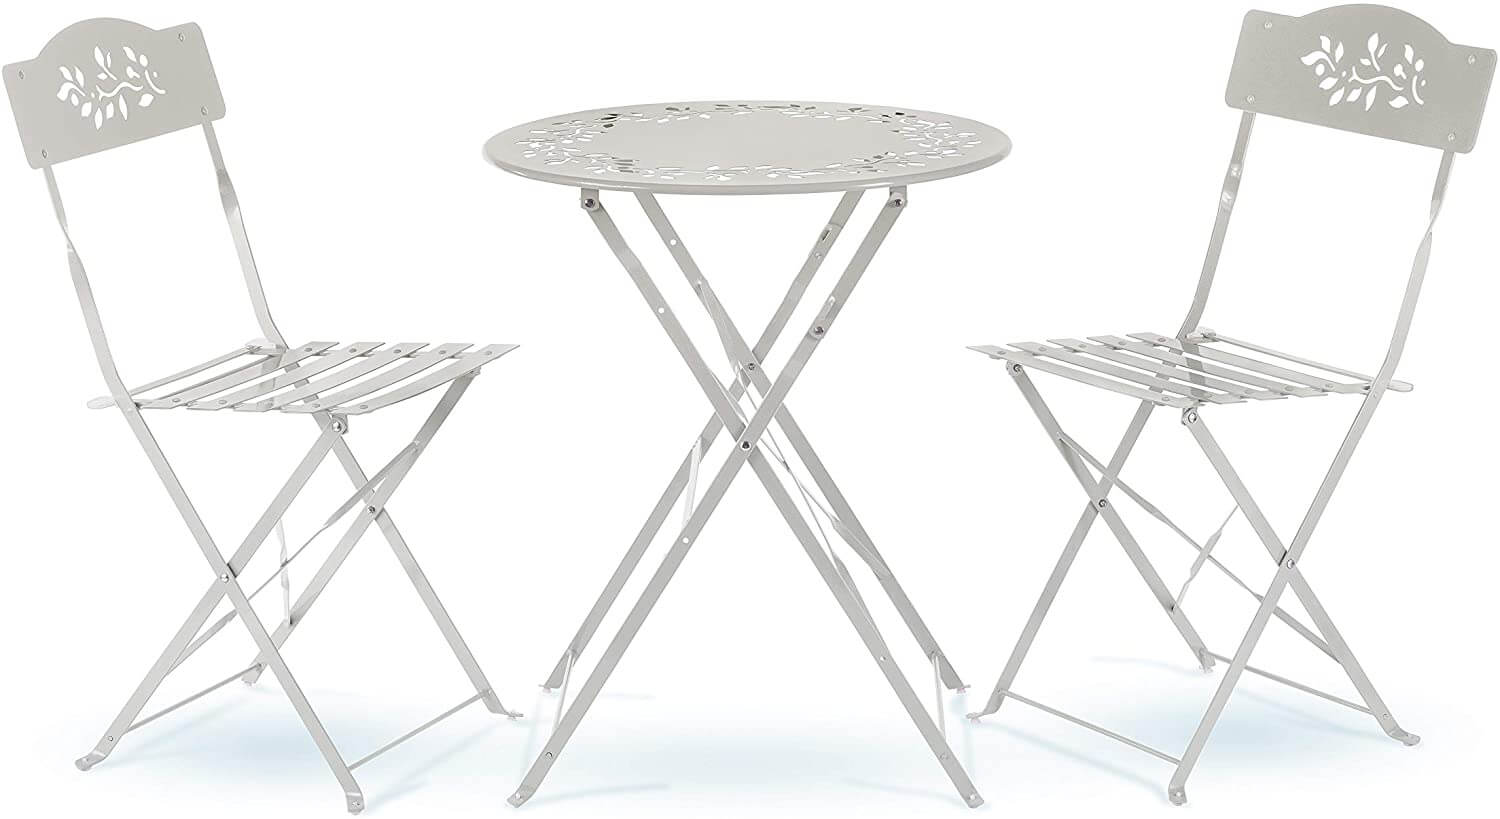 WHITE FOLDING PATIO TABLE AND CHAIRS DESIGN IDEAS